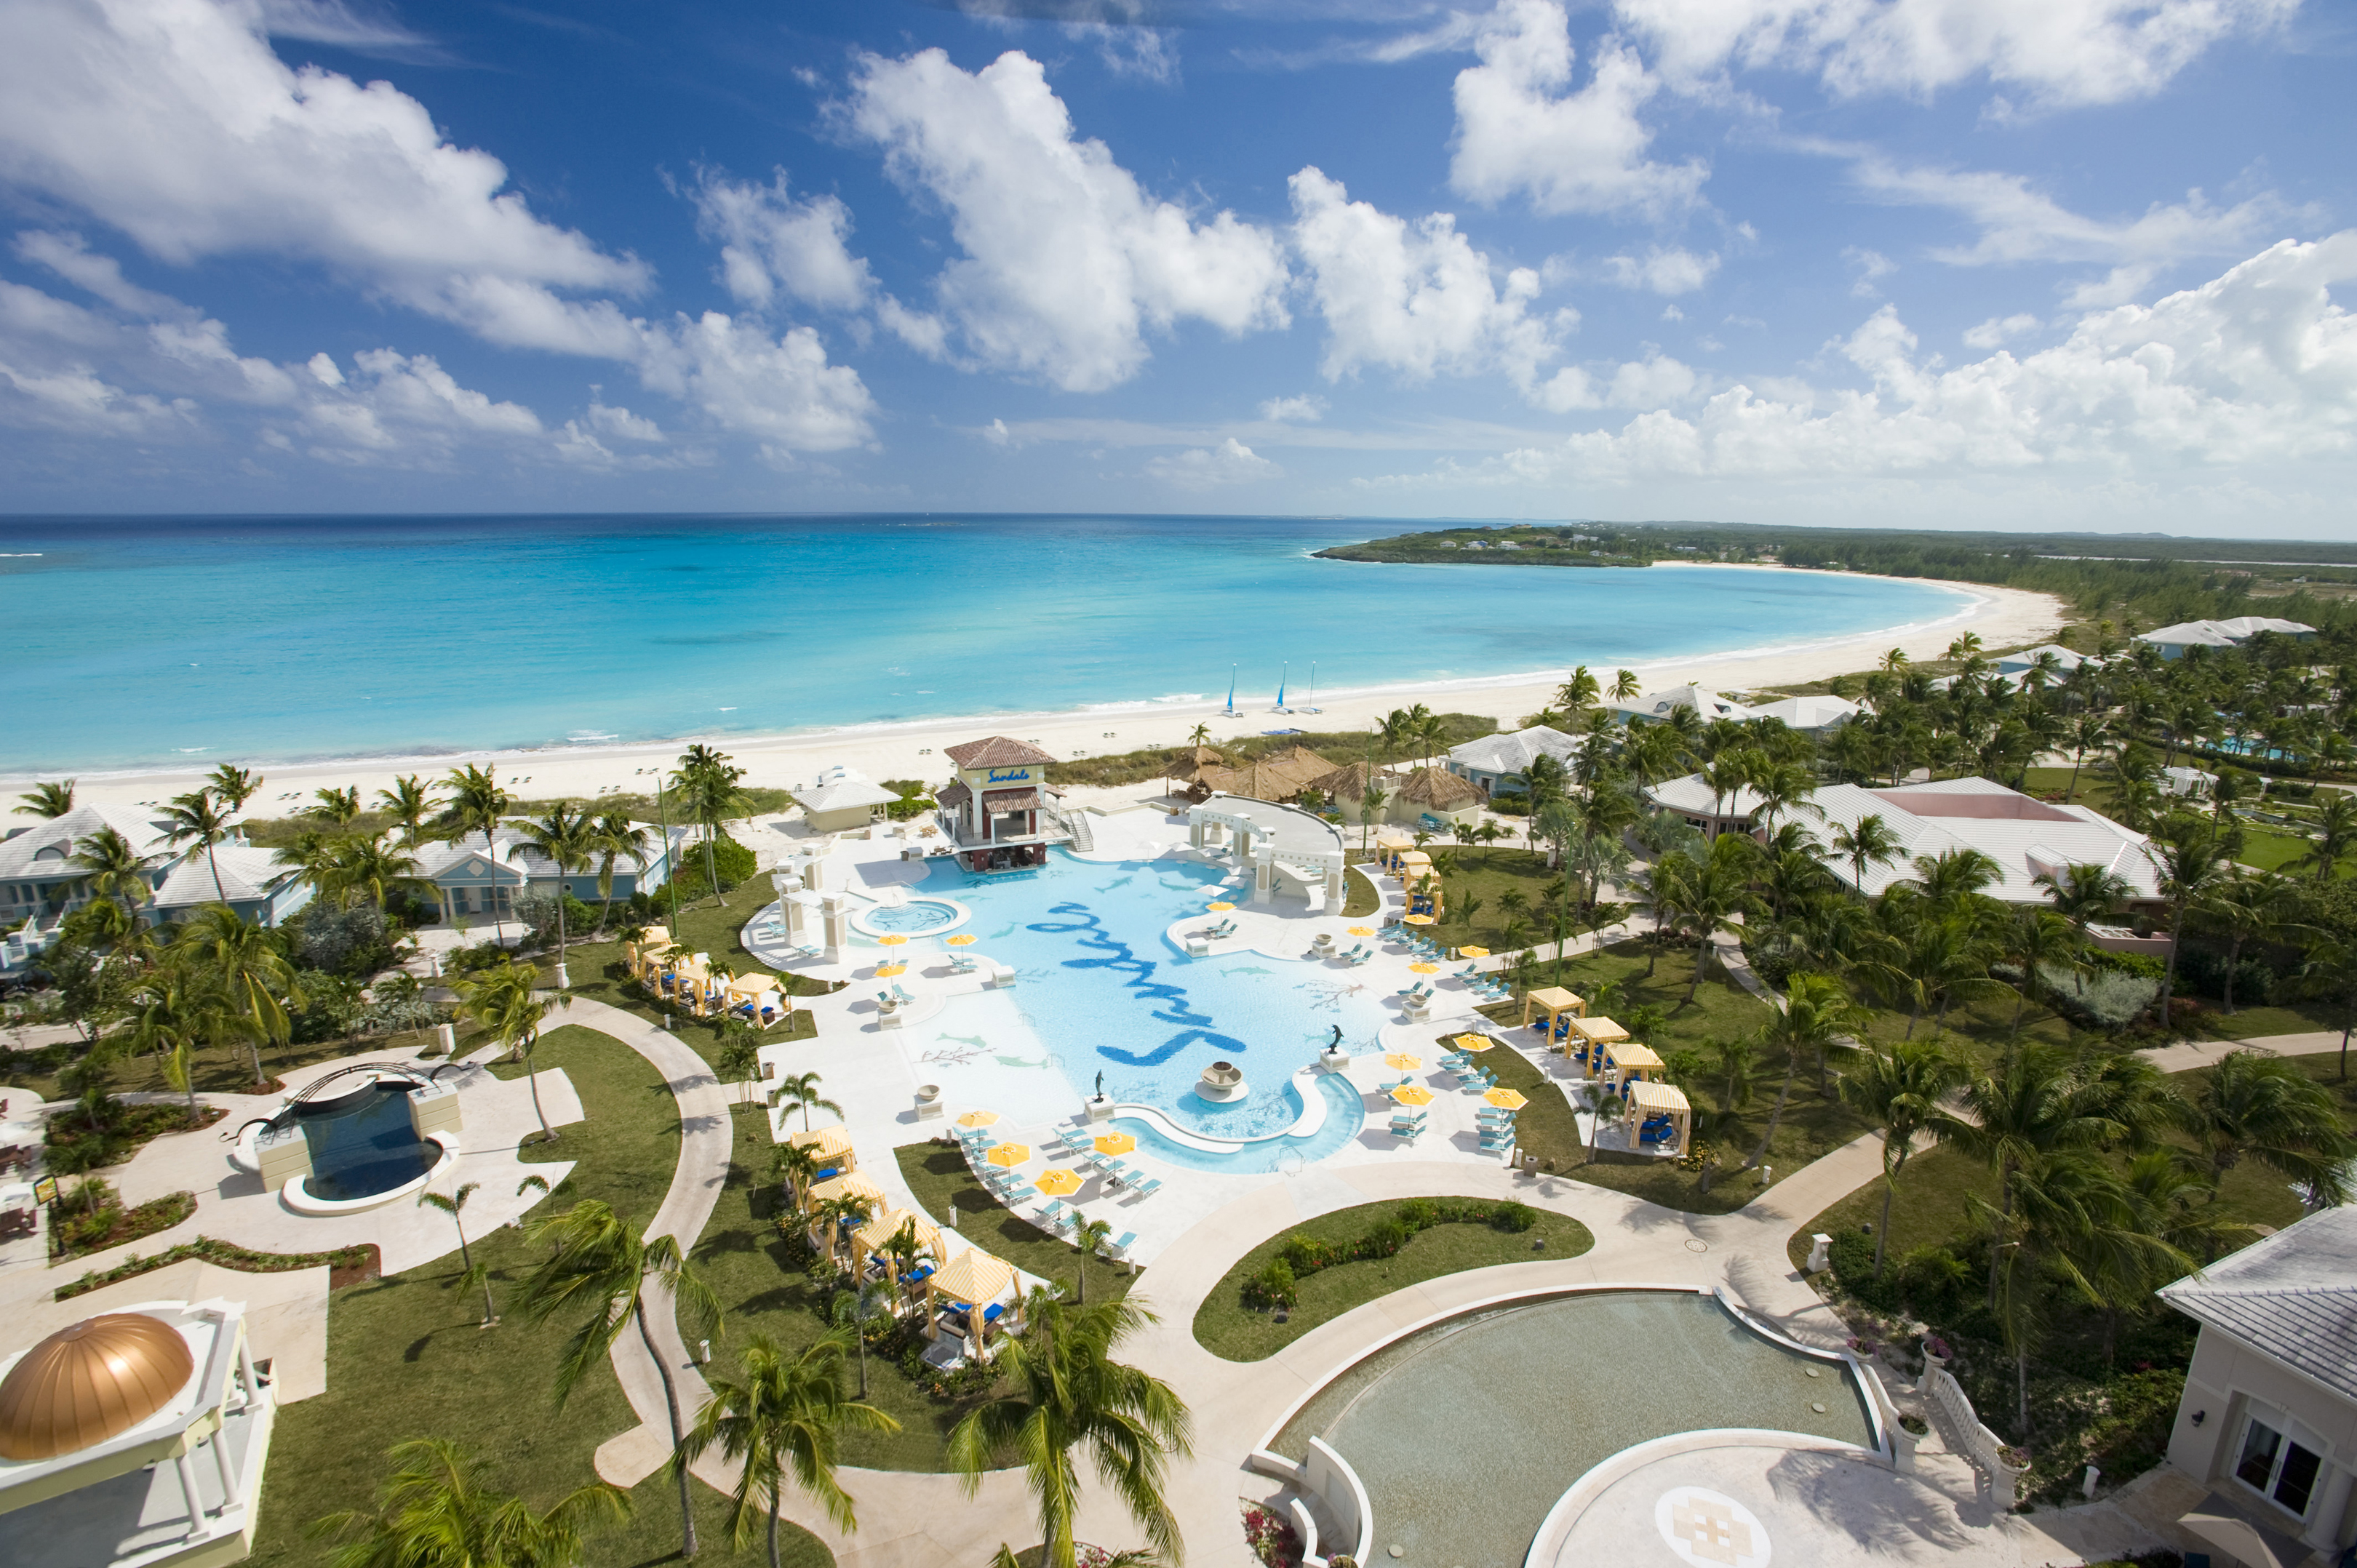 Discover The Beauty Of The Bahamas With Sandals Island